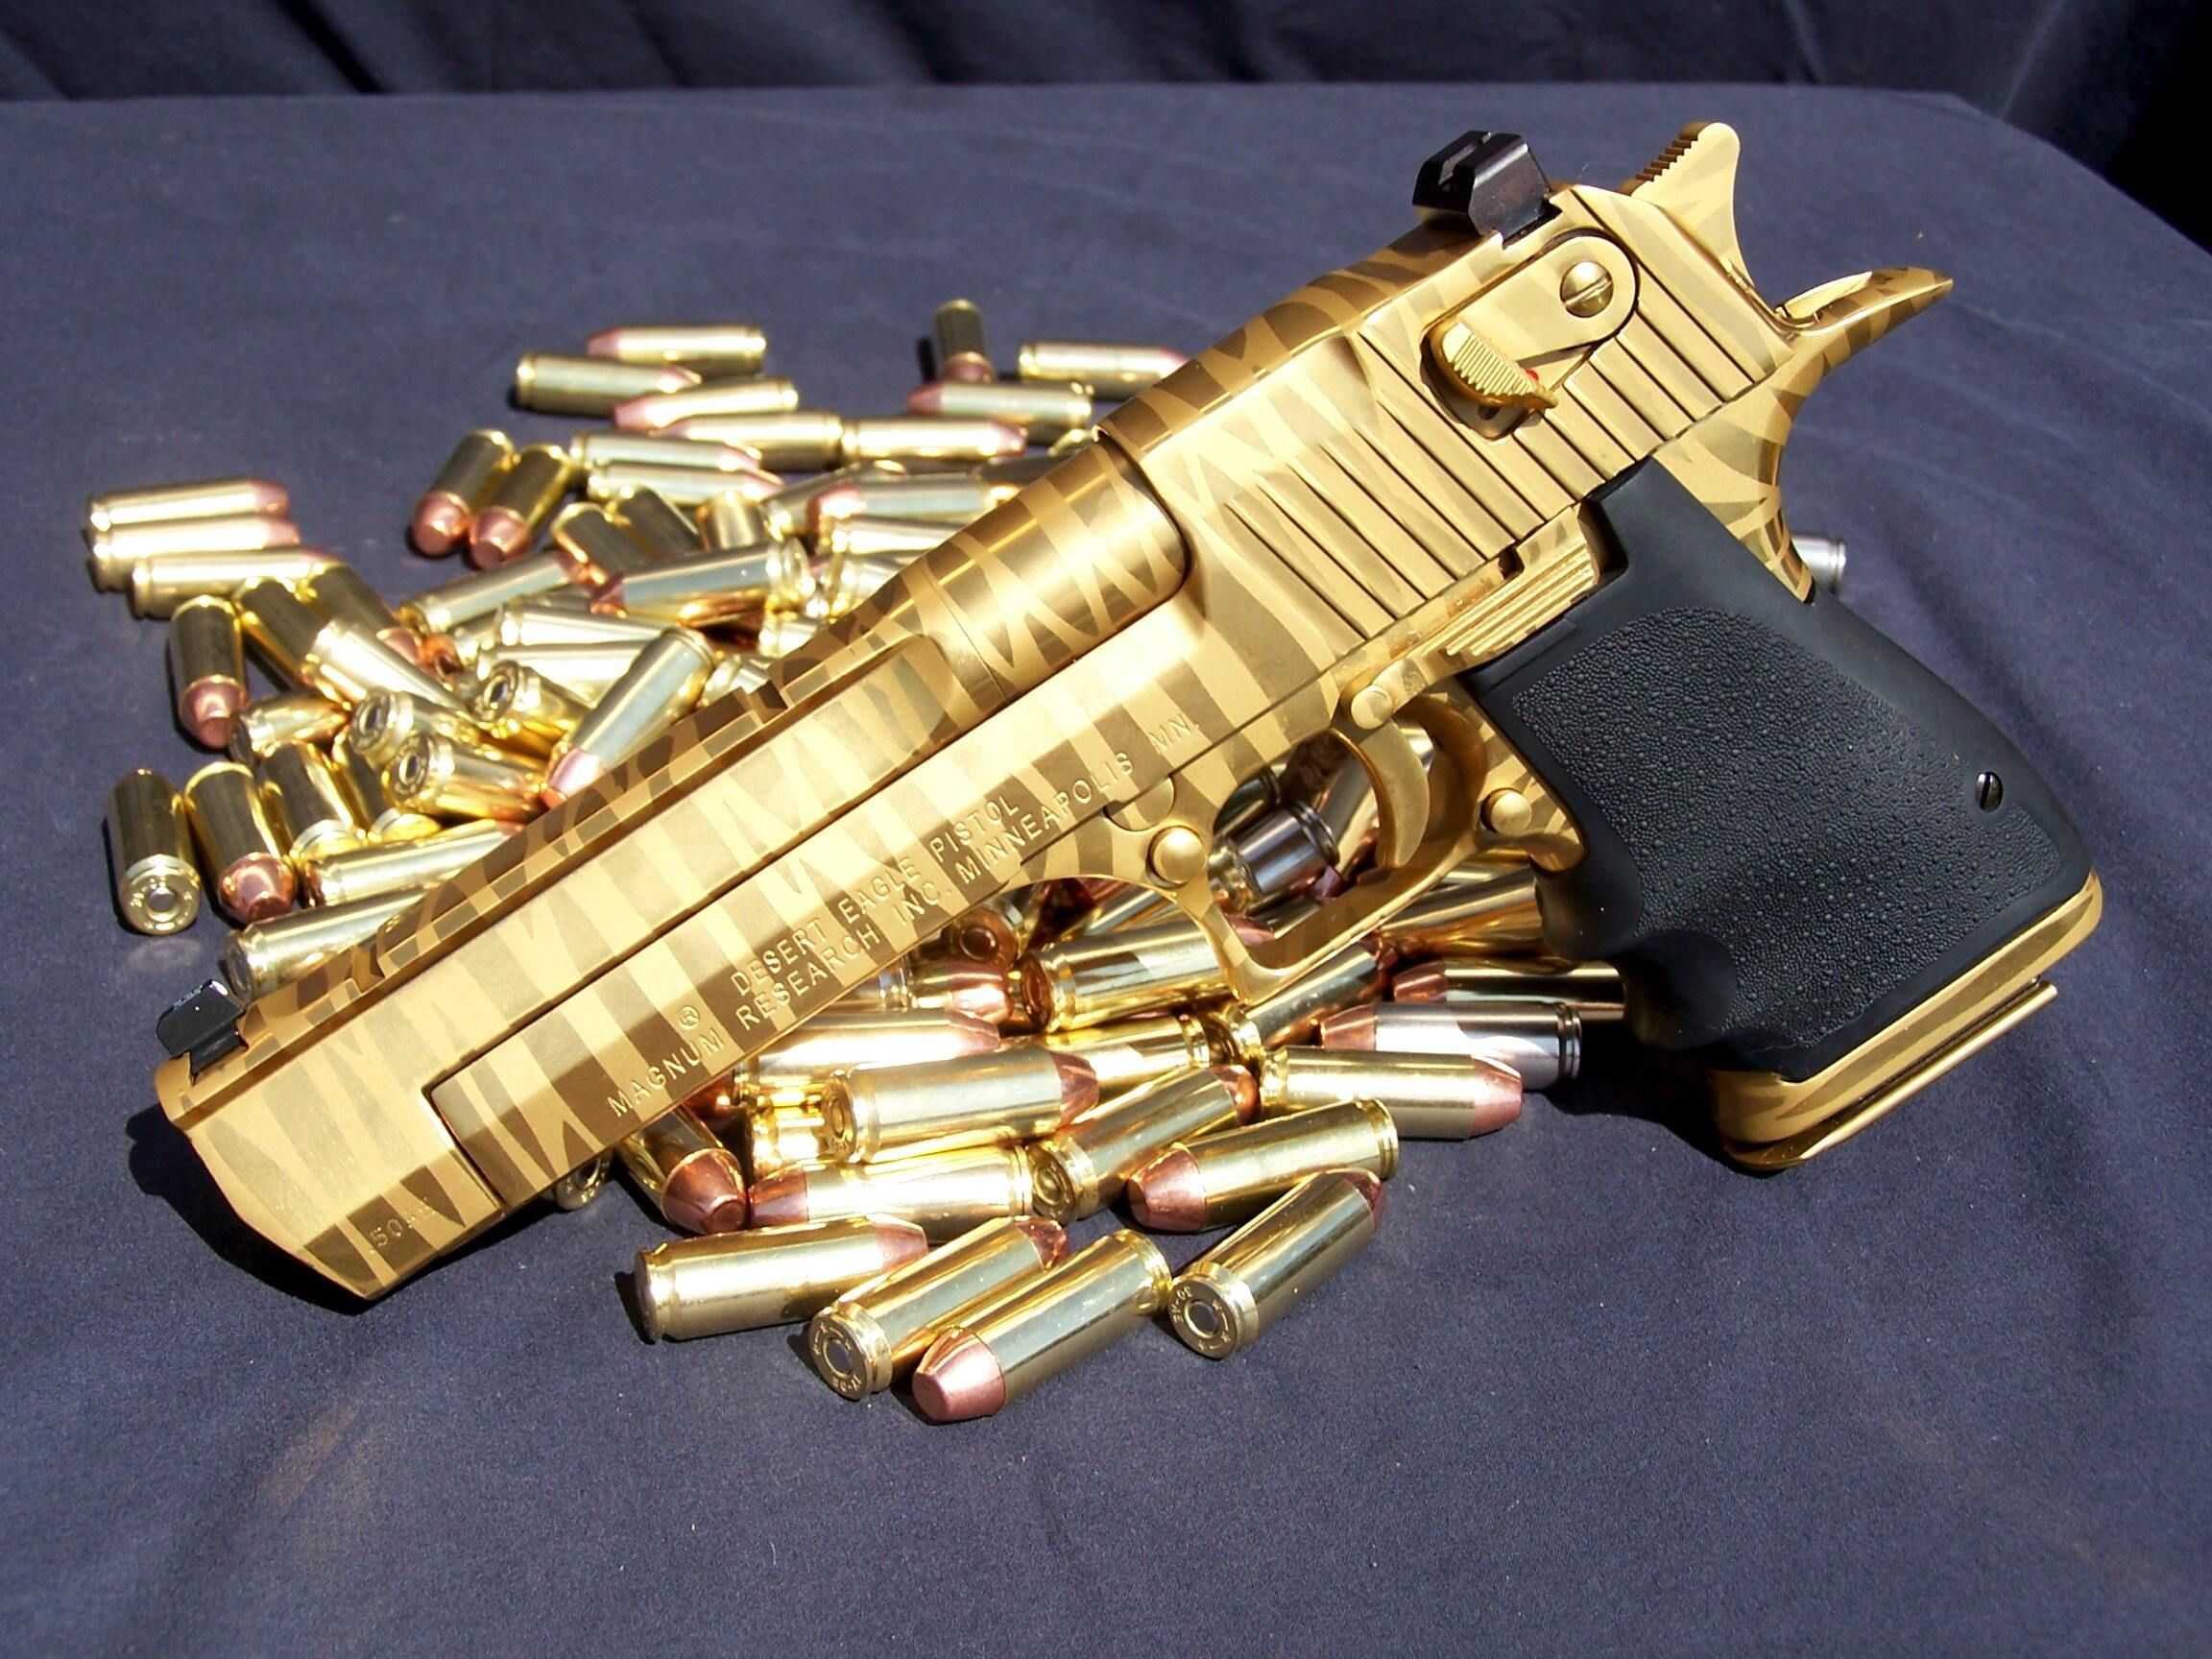 Imi Desert Eagle 50 Ae Gold Plated And Tiger Striped Waffen